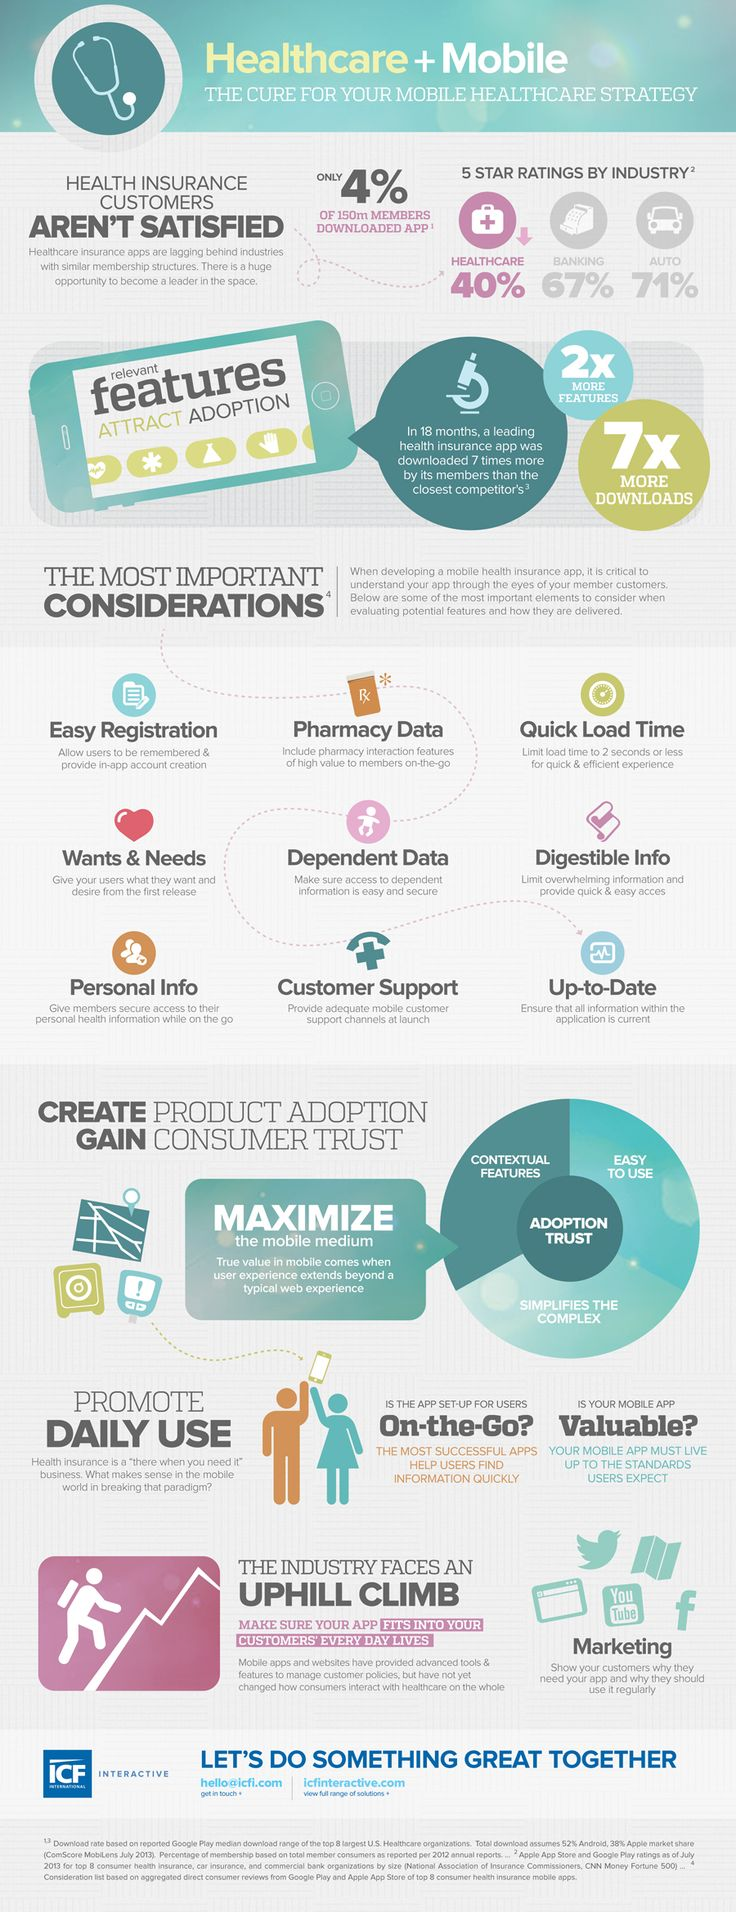 Healthcare and Mobile #infographics #mhealth #mobilehealthcare